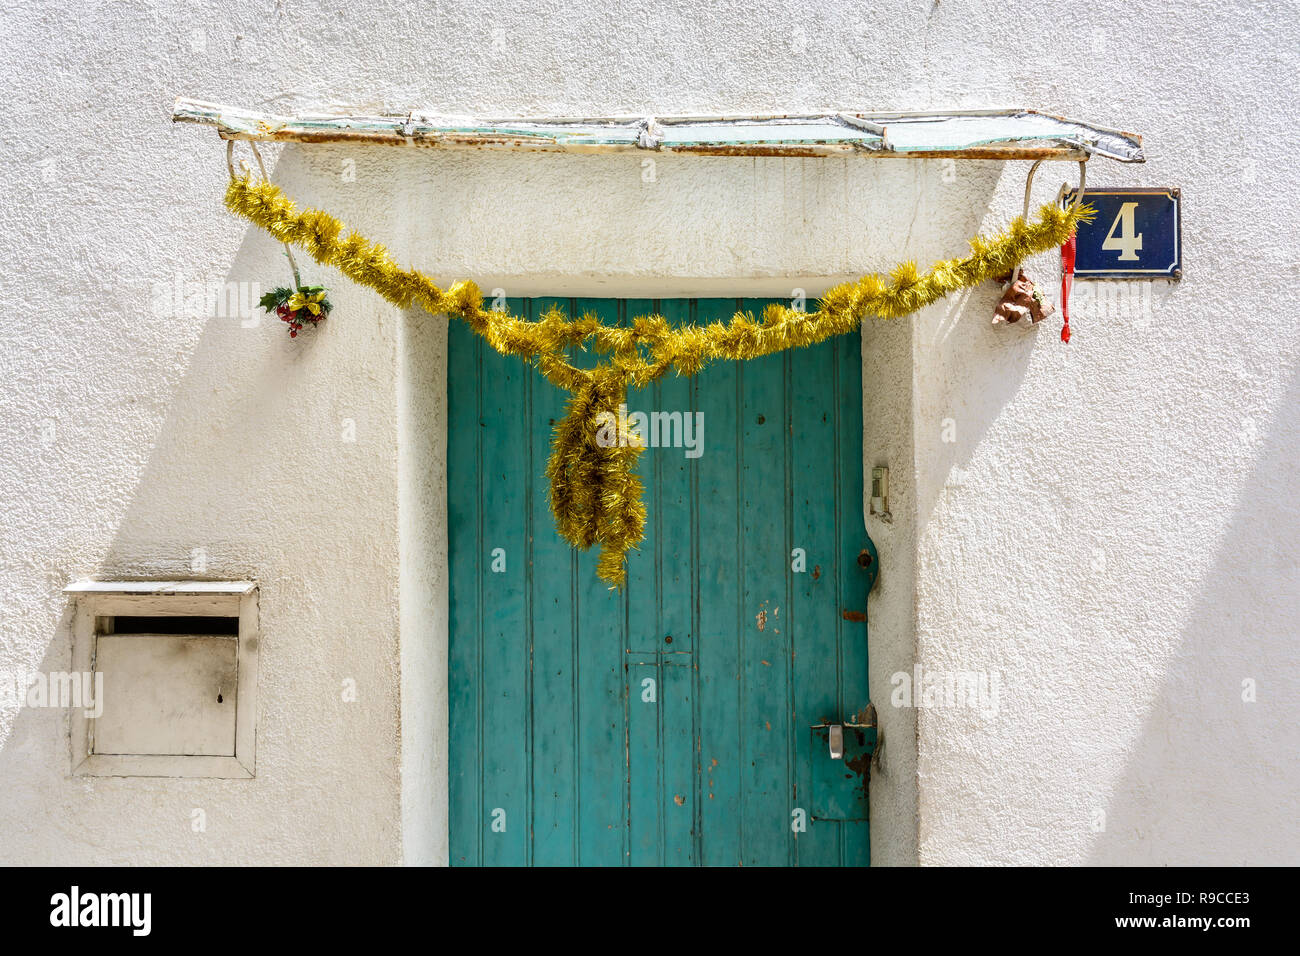 A Cheap, Used Golden Christmas Tinsel Decorating The Awning ...